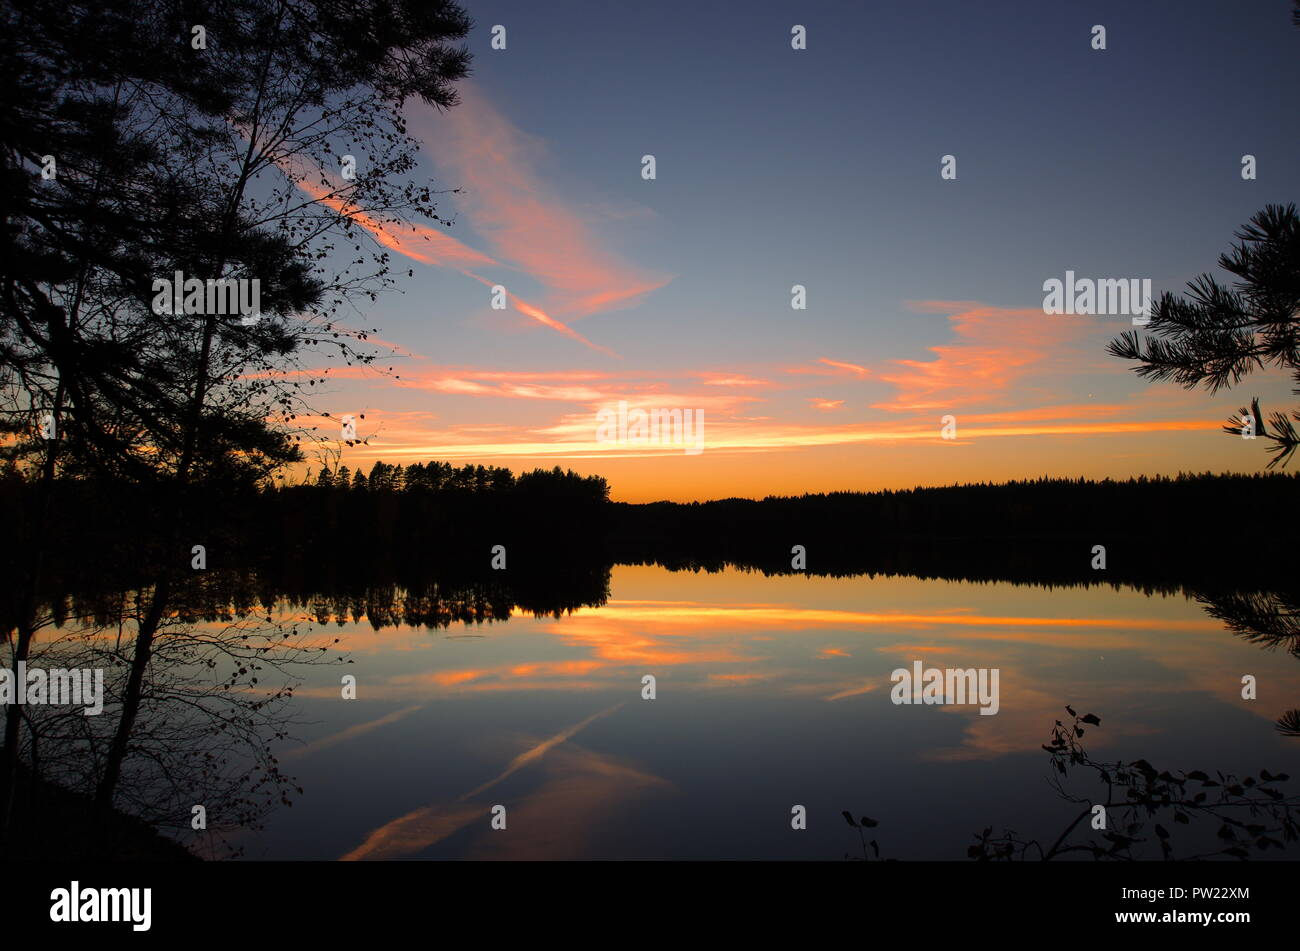 Beautiful and colourful autumn sunset over a lake surrounded by forests in Dalarna,Sweden. - Stock Image